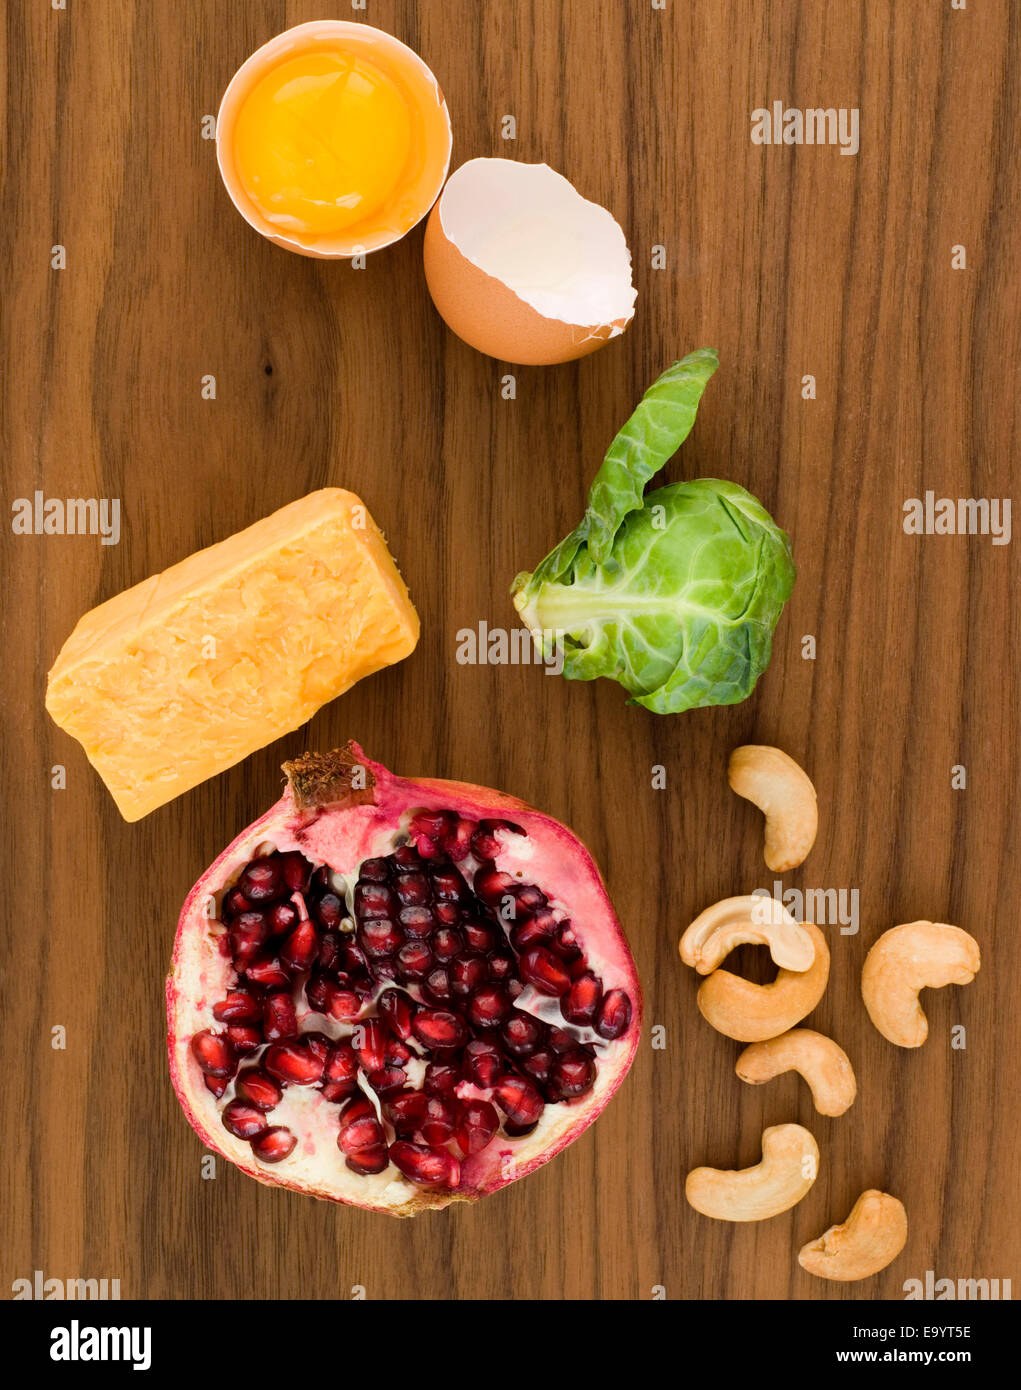 still life of various foods on wood surface - Stock Image